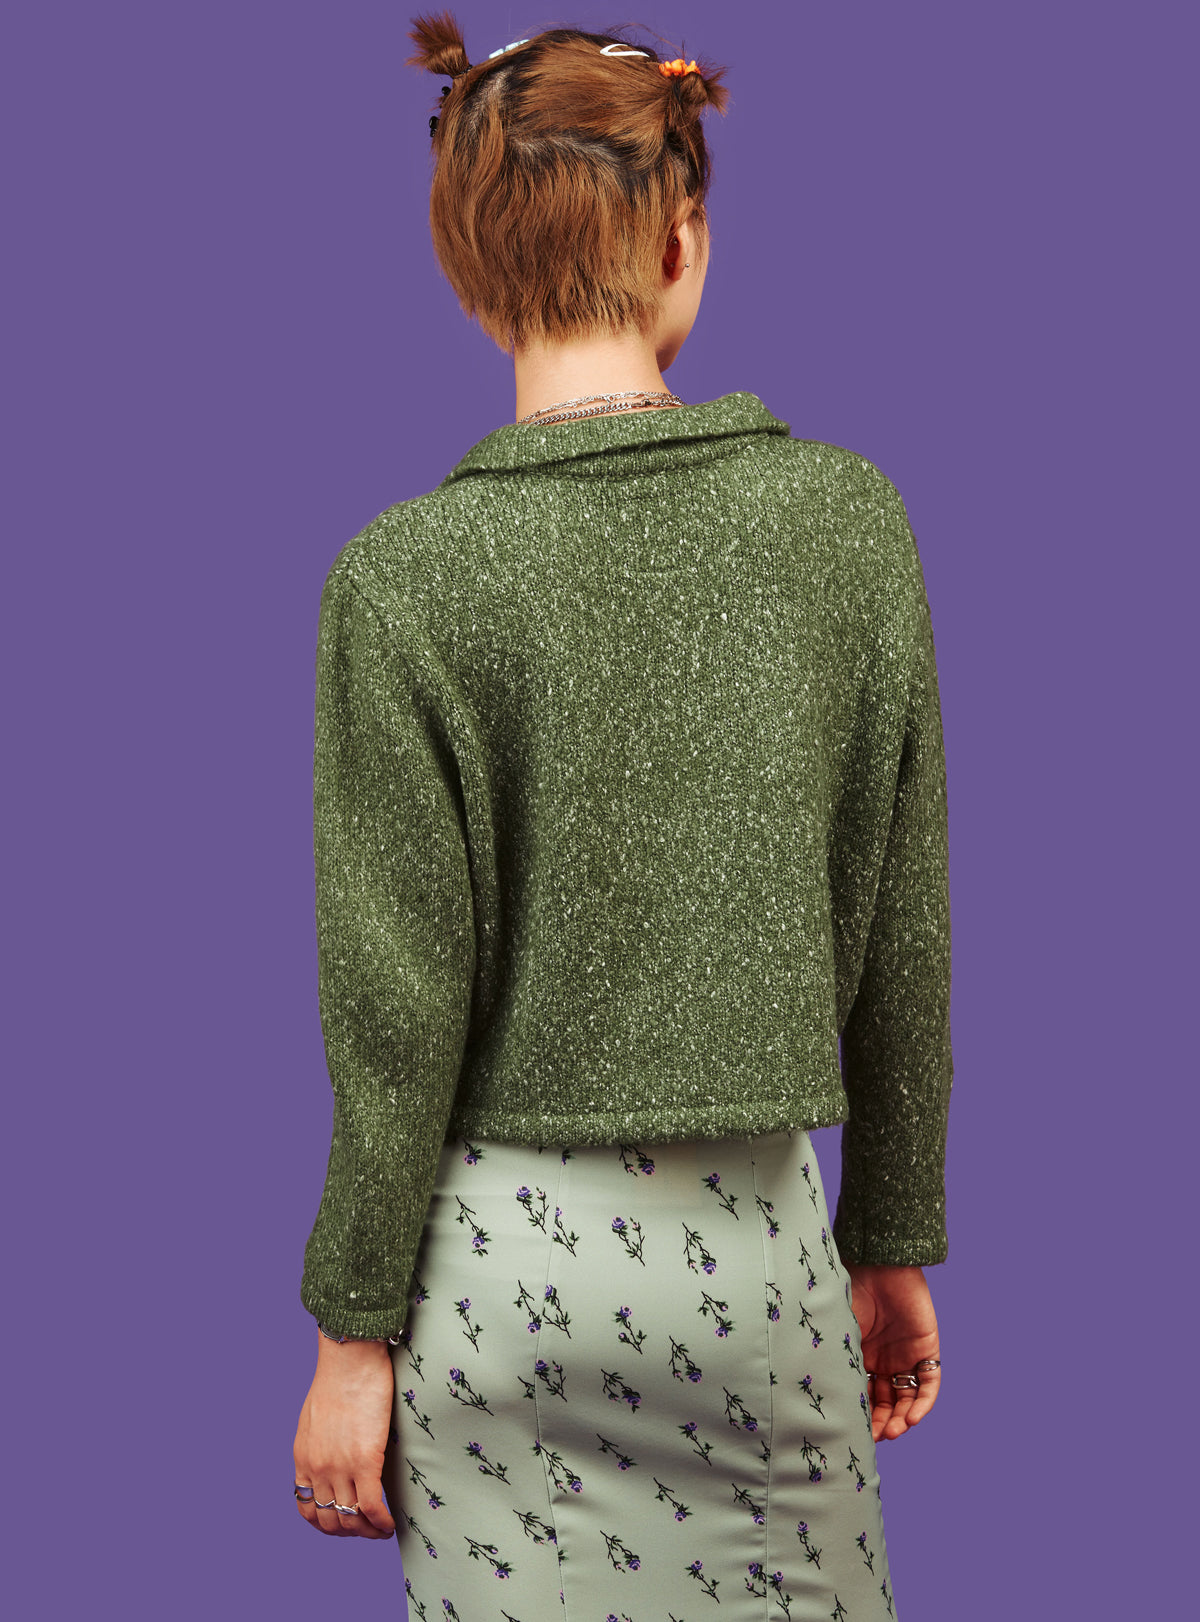 Doze Sweater